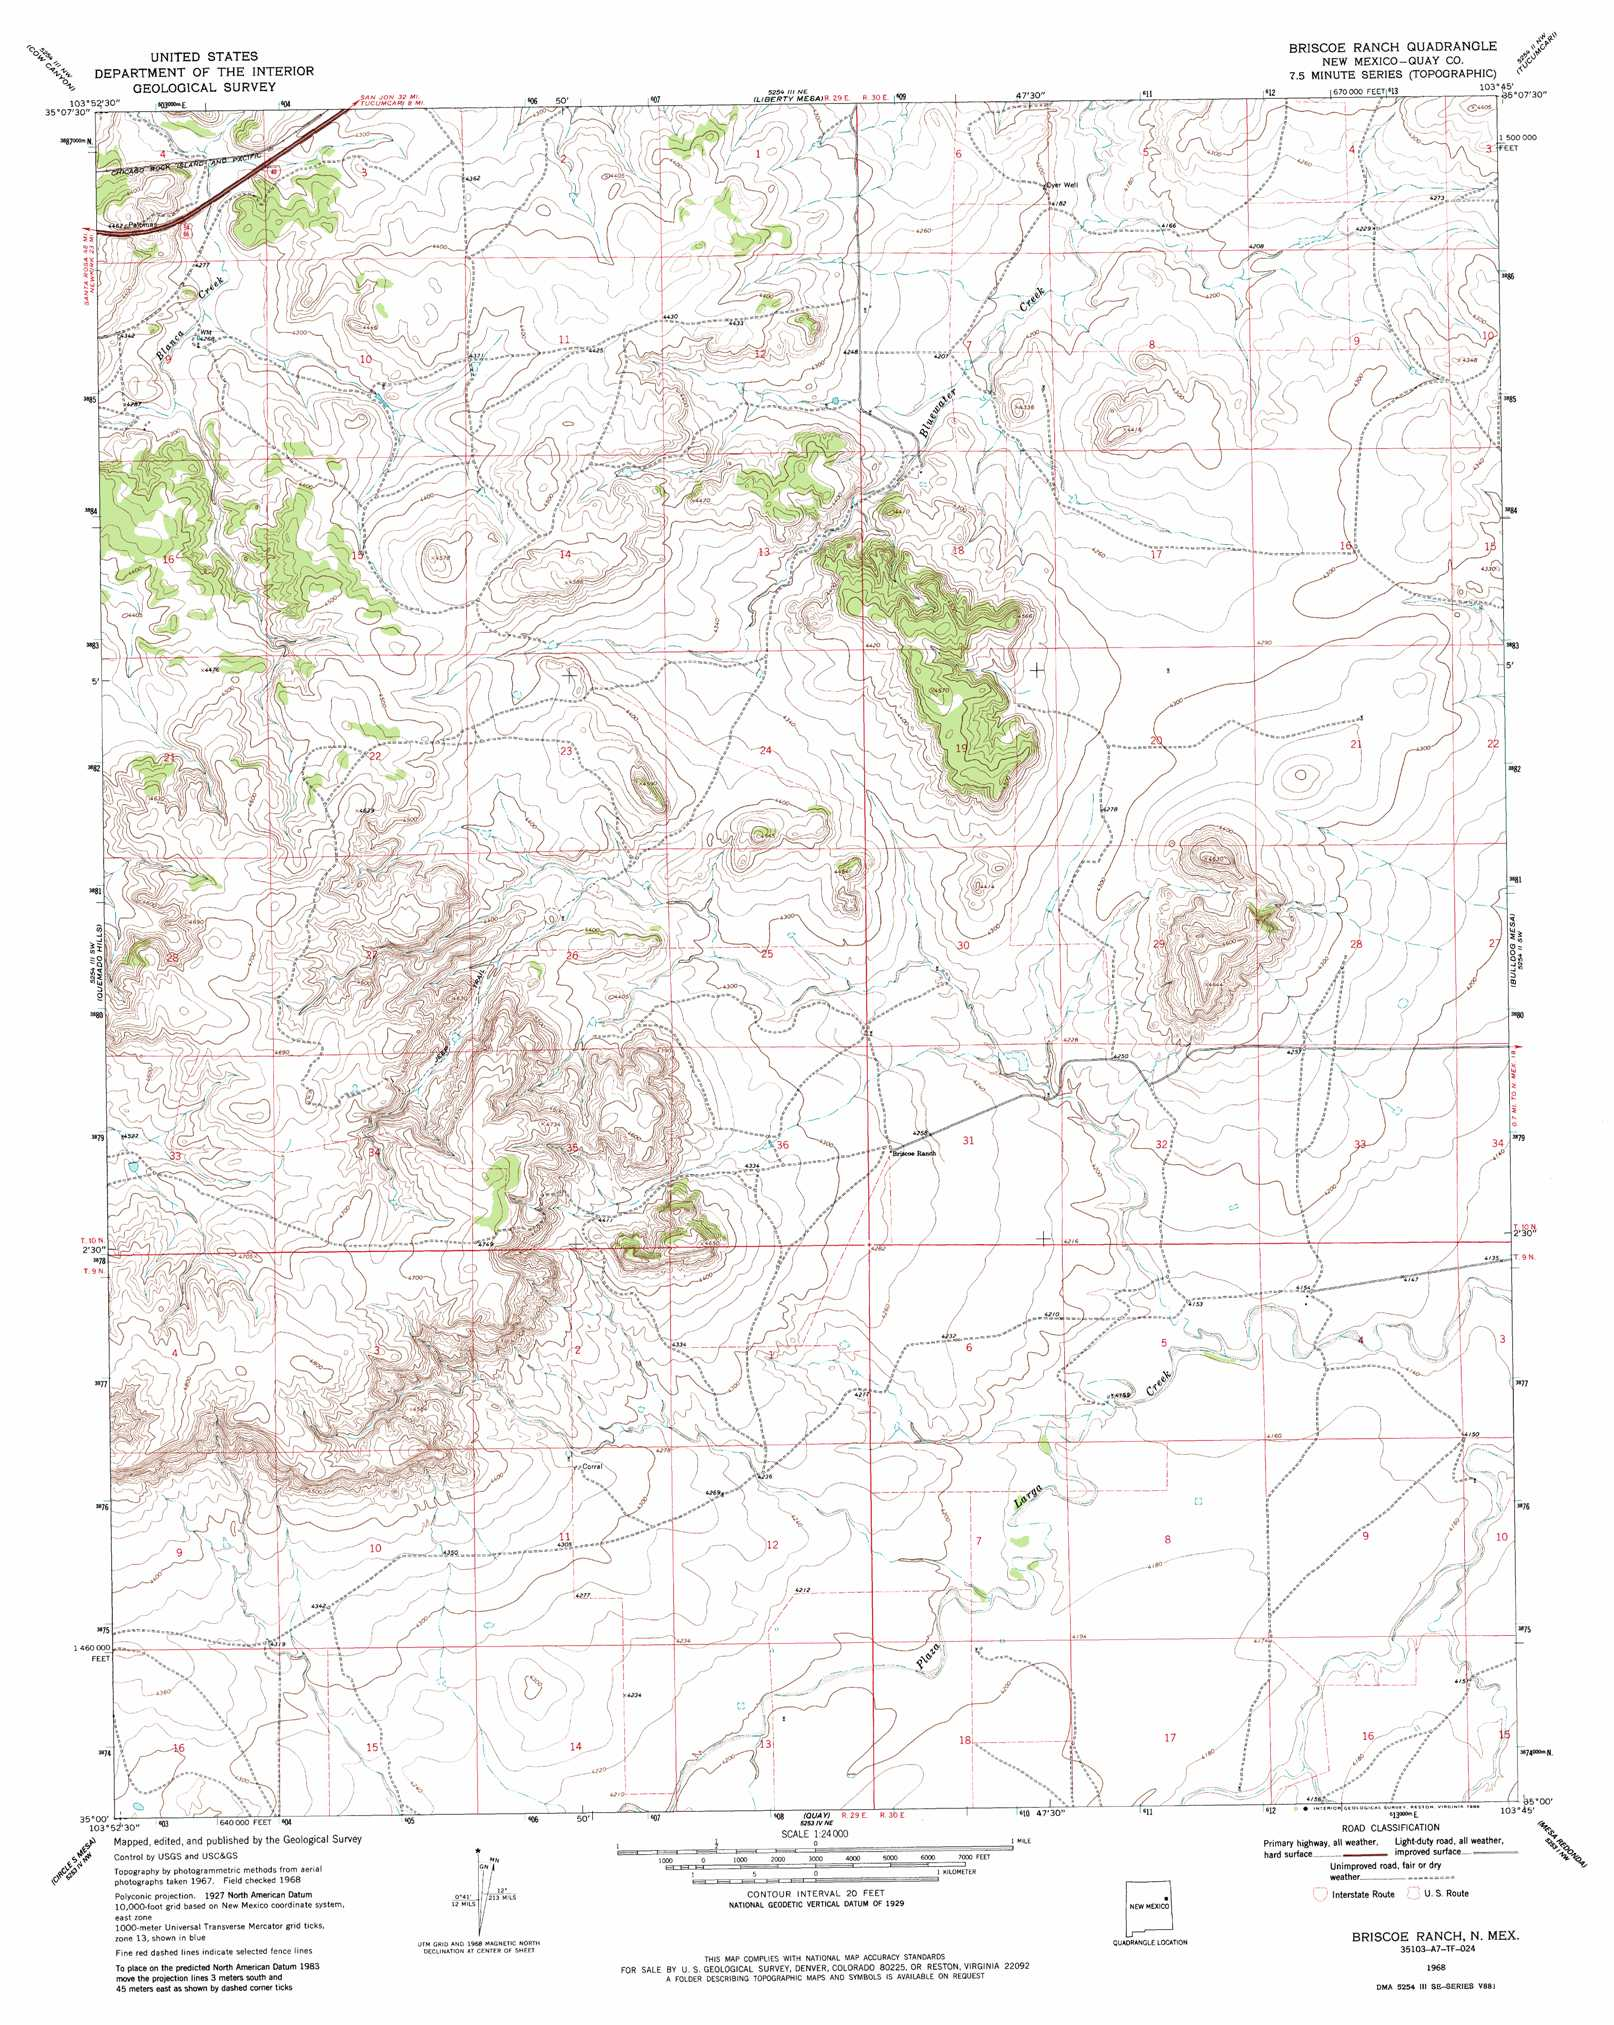 Briscoe Ranch topographic map NM USGS Topo Quad 35103a7